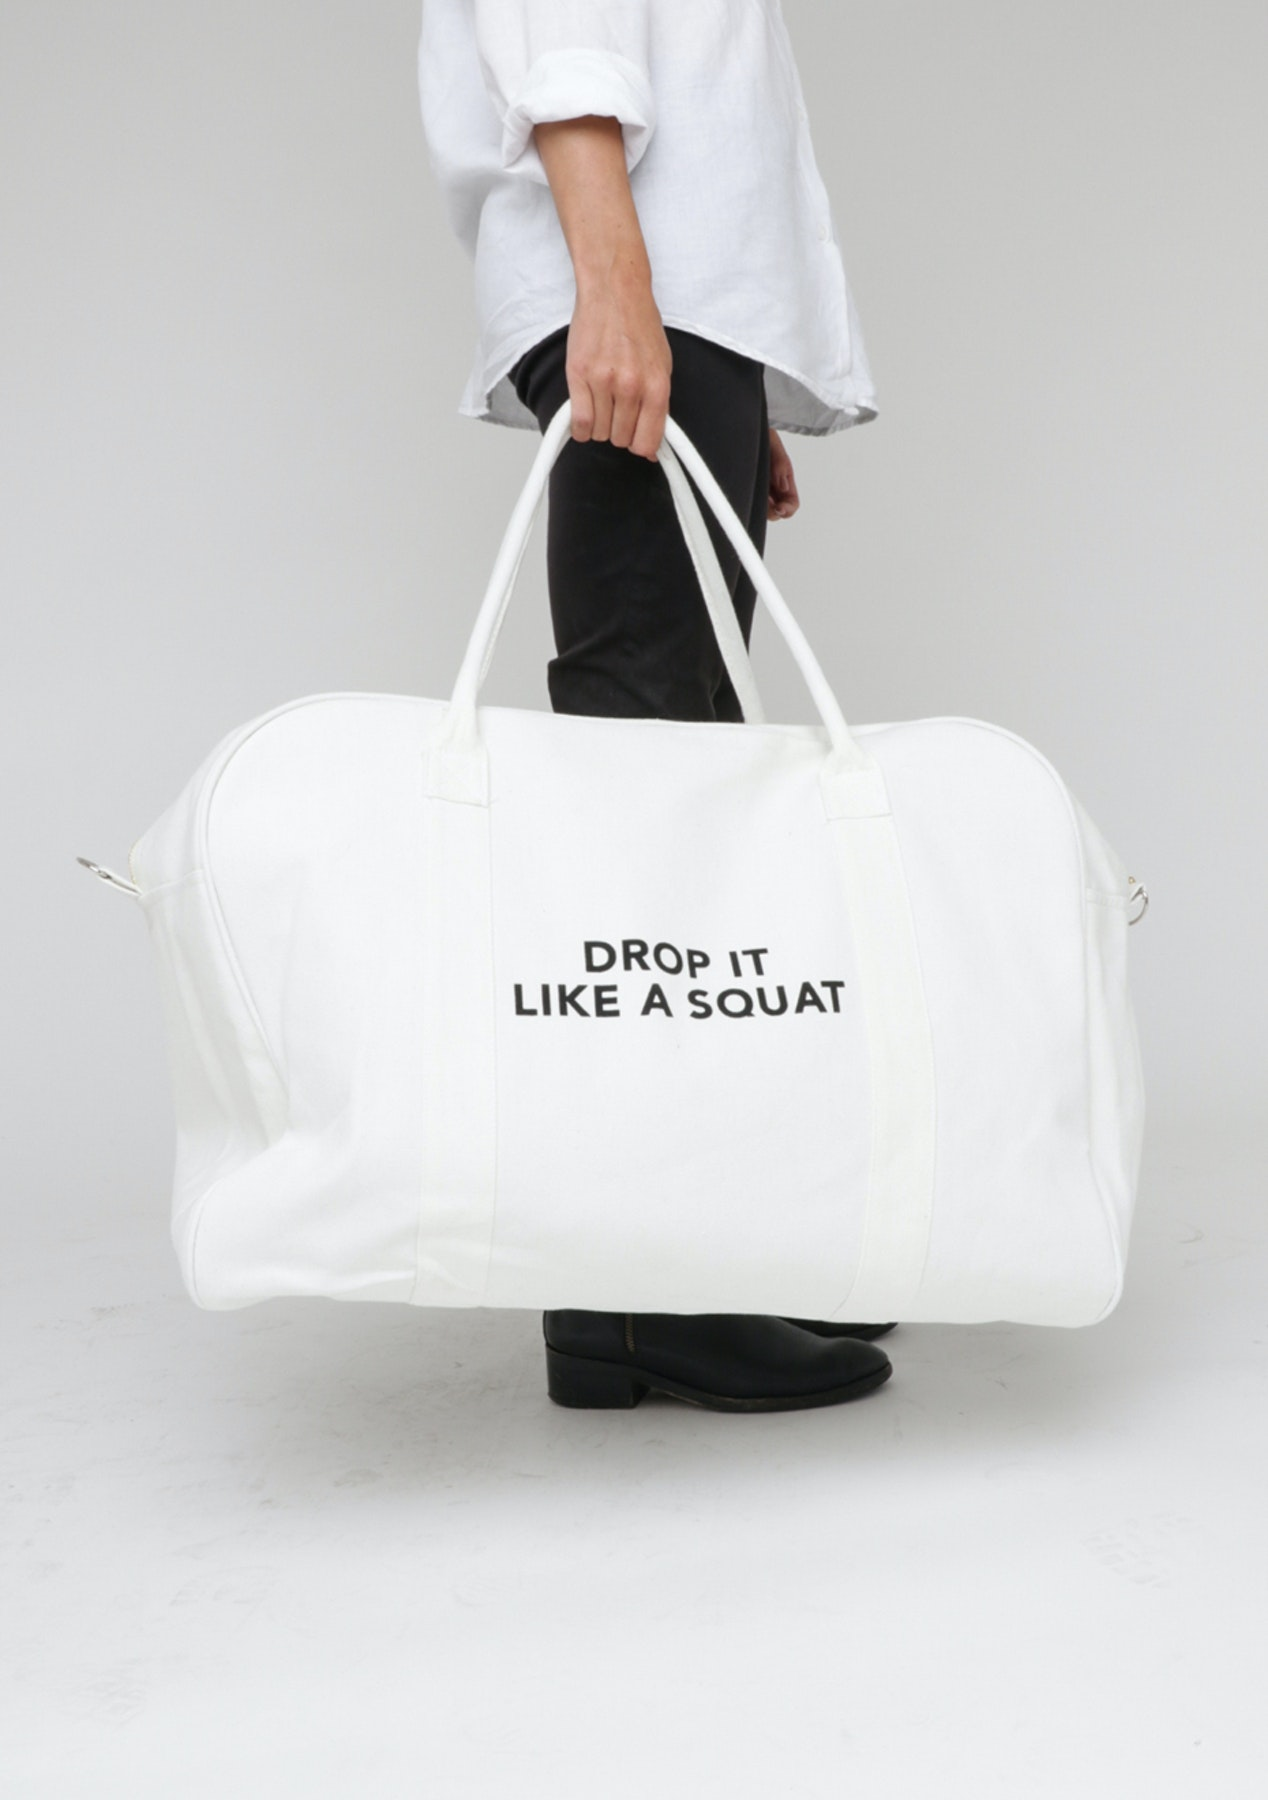 DROP IT LIKE A SQUAT - Duffle Bag - Home   Gifts Under  20 - Onceit 09d9edf445d03